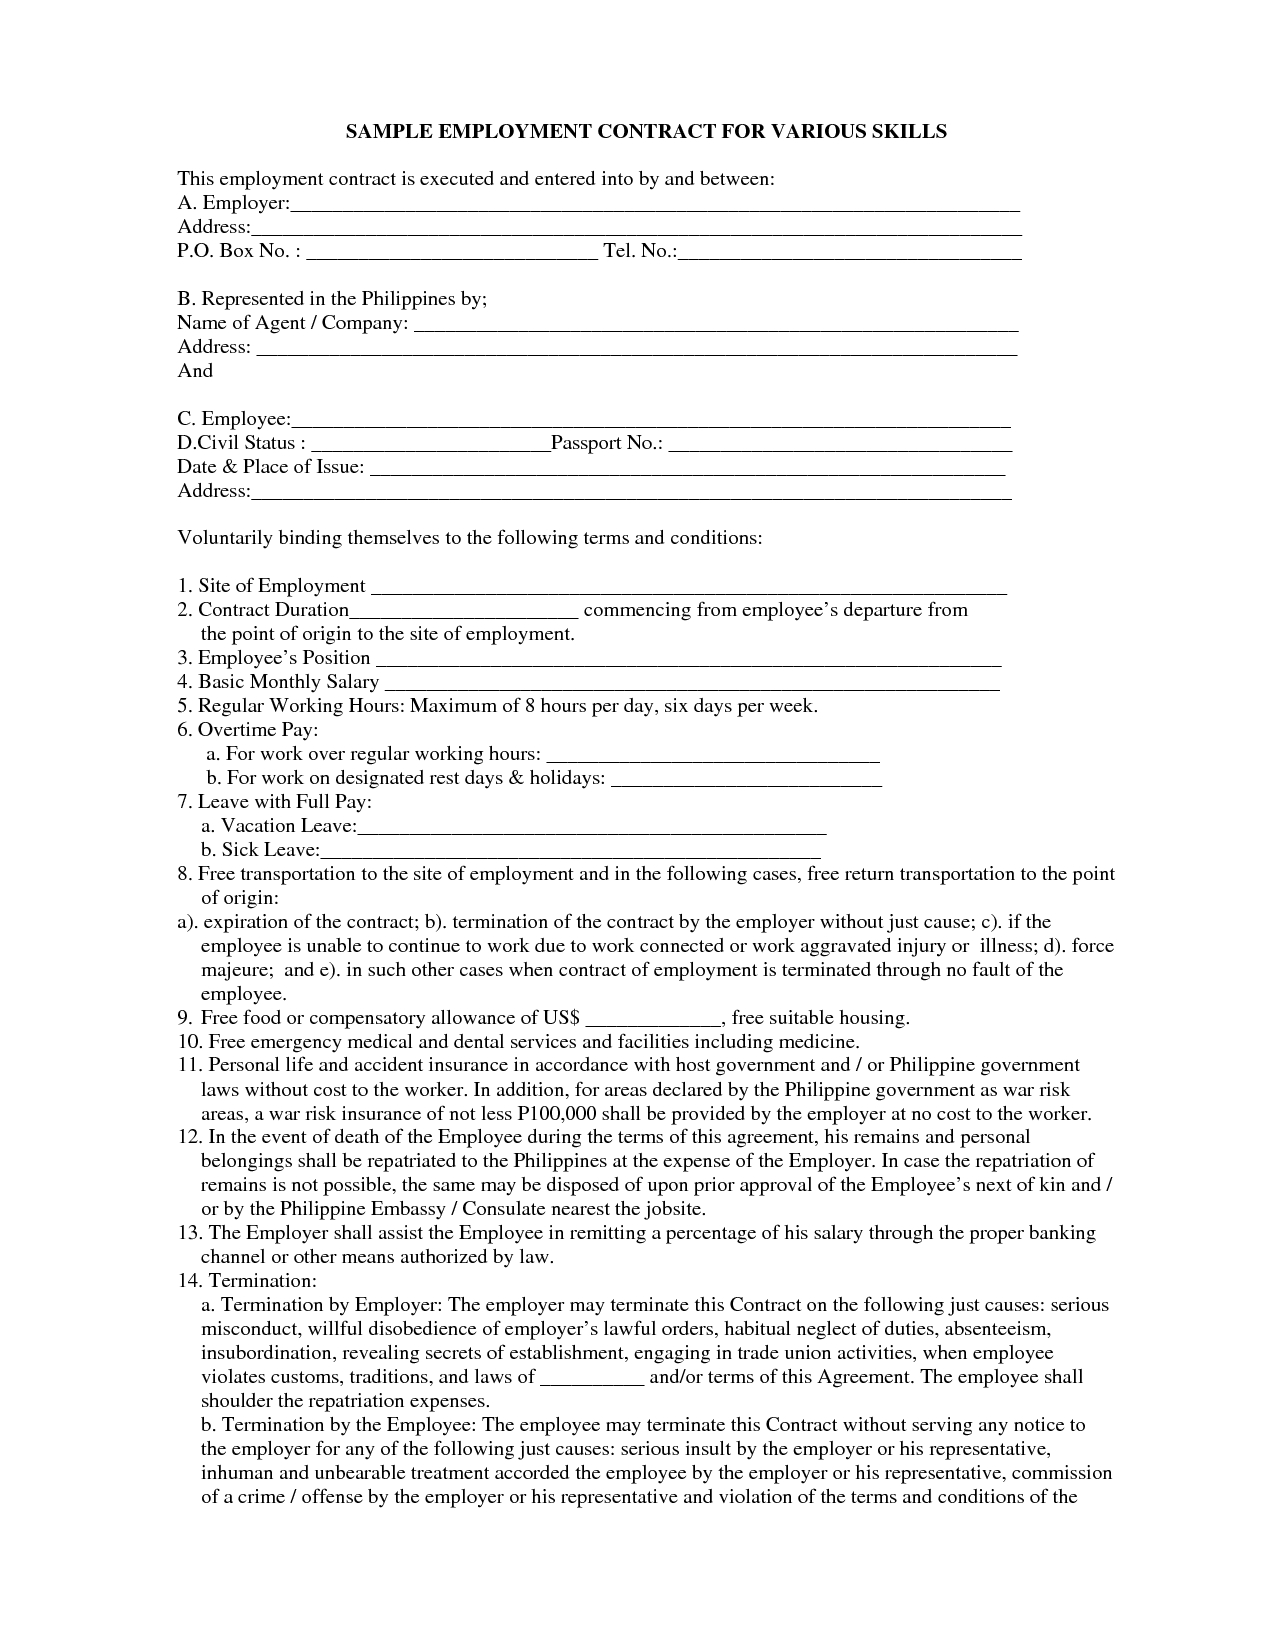 Template: Employment Contract Template - Free Printable Employment Contracts